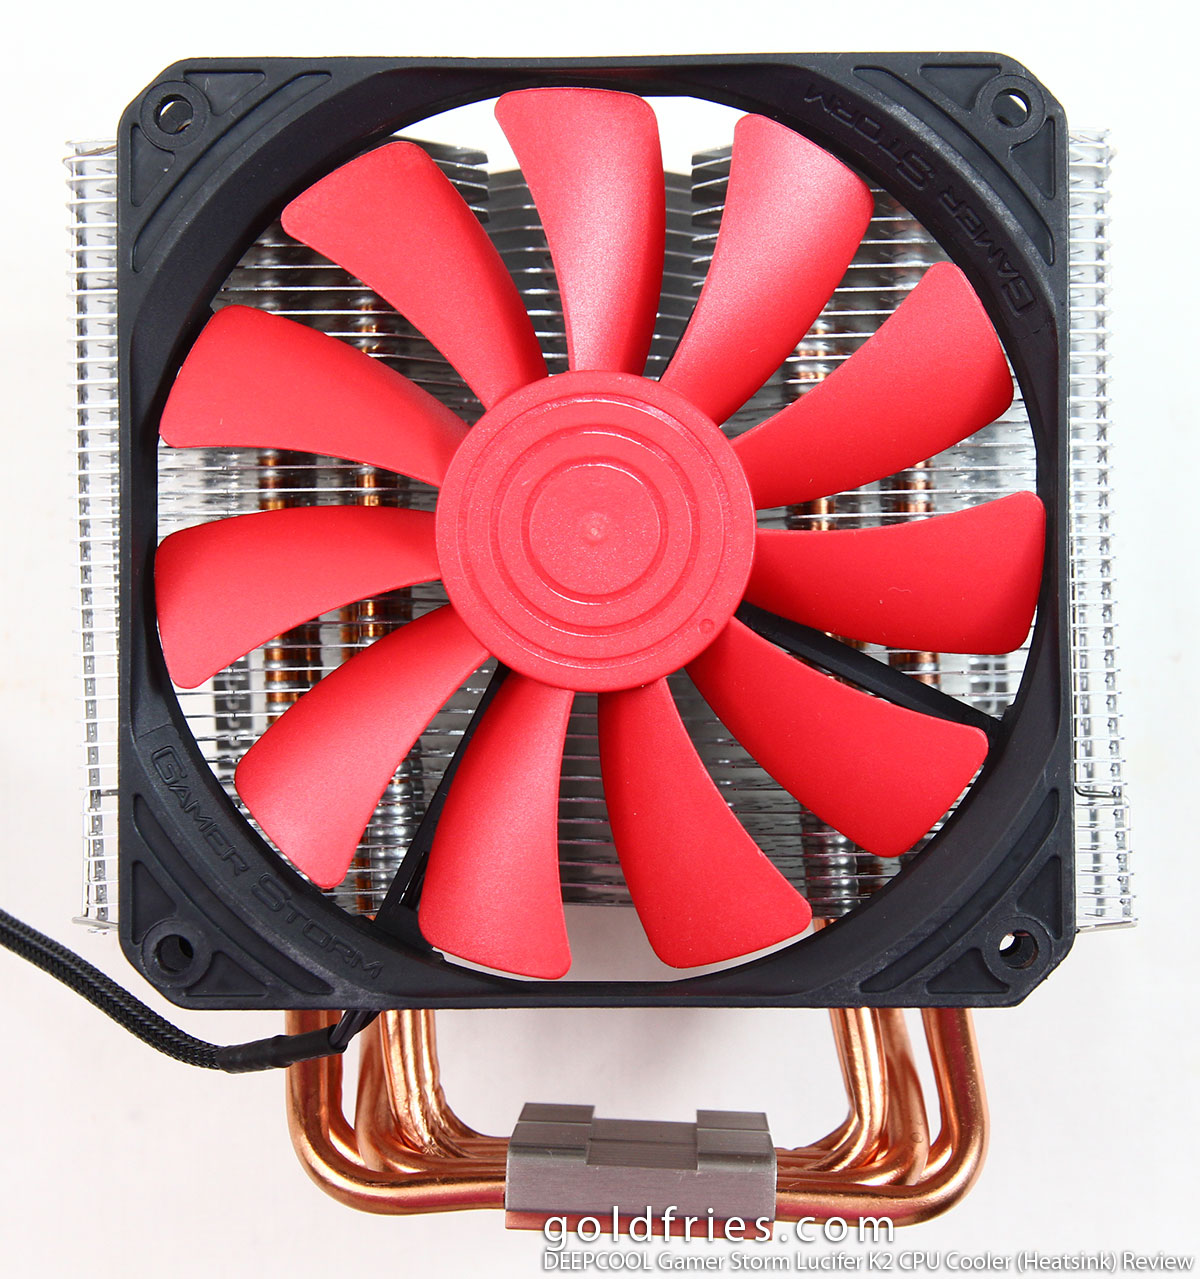 DEEPCOOL Gamer Storm Lucifer K2 CPU Cooler (Heatsink) Review